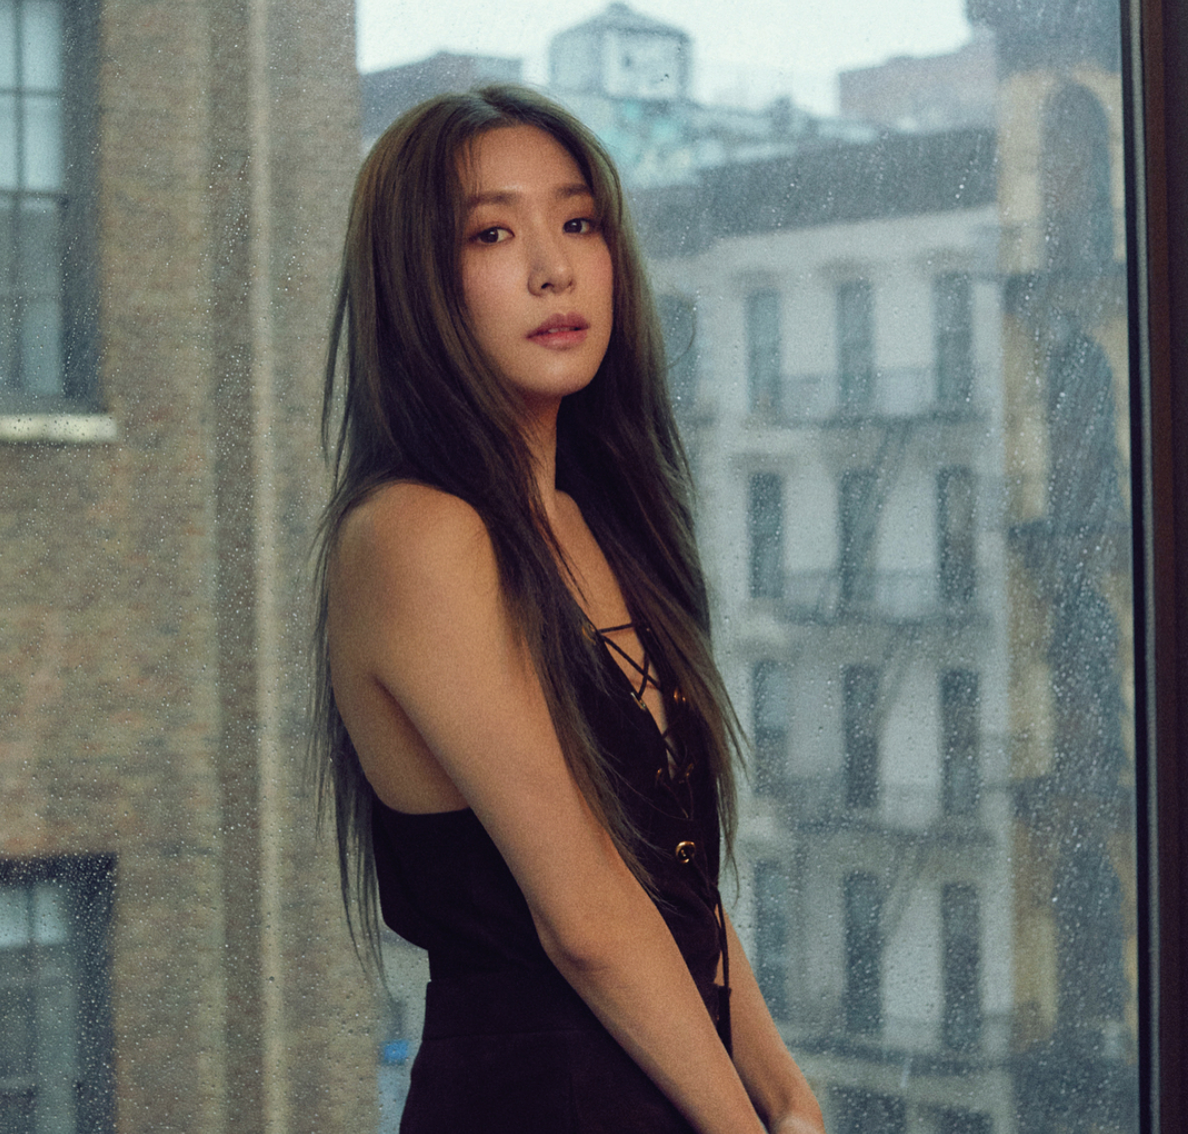 Tiffany in front of a rainy window